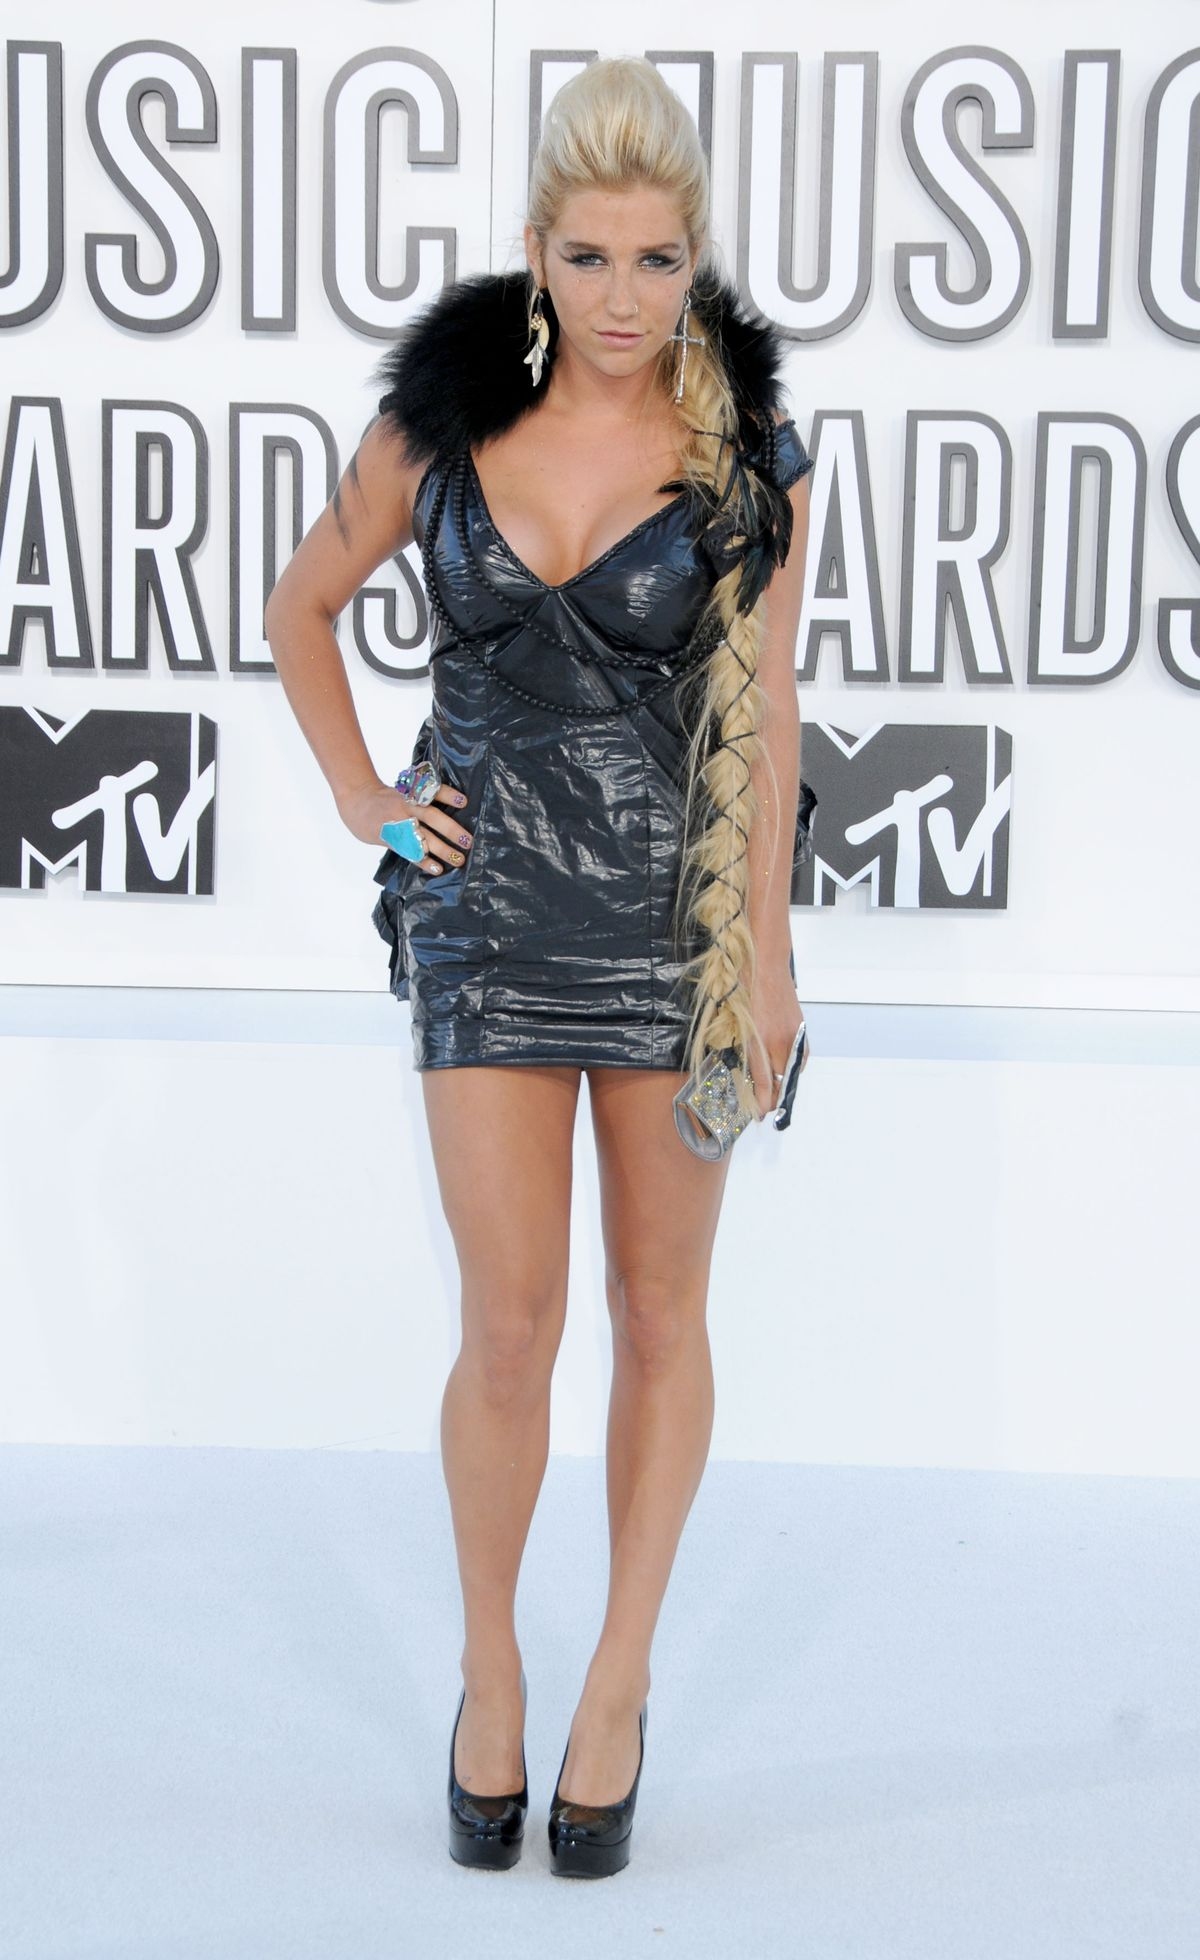 LOS ANGELES, CA - SEPTEMBER 12: Ke$ha attends the 2010 MTV Video Music Awards at the Nokia Theatre on September 12, 2010 in Los Angeles, CA.  (Photo by Gregg DeGuire/FilmMagic)